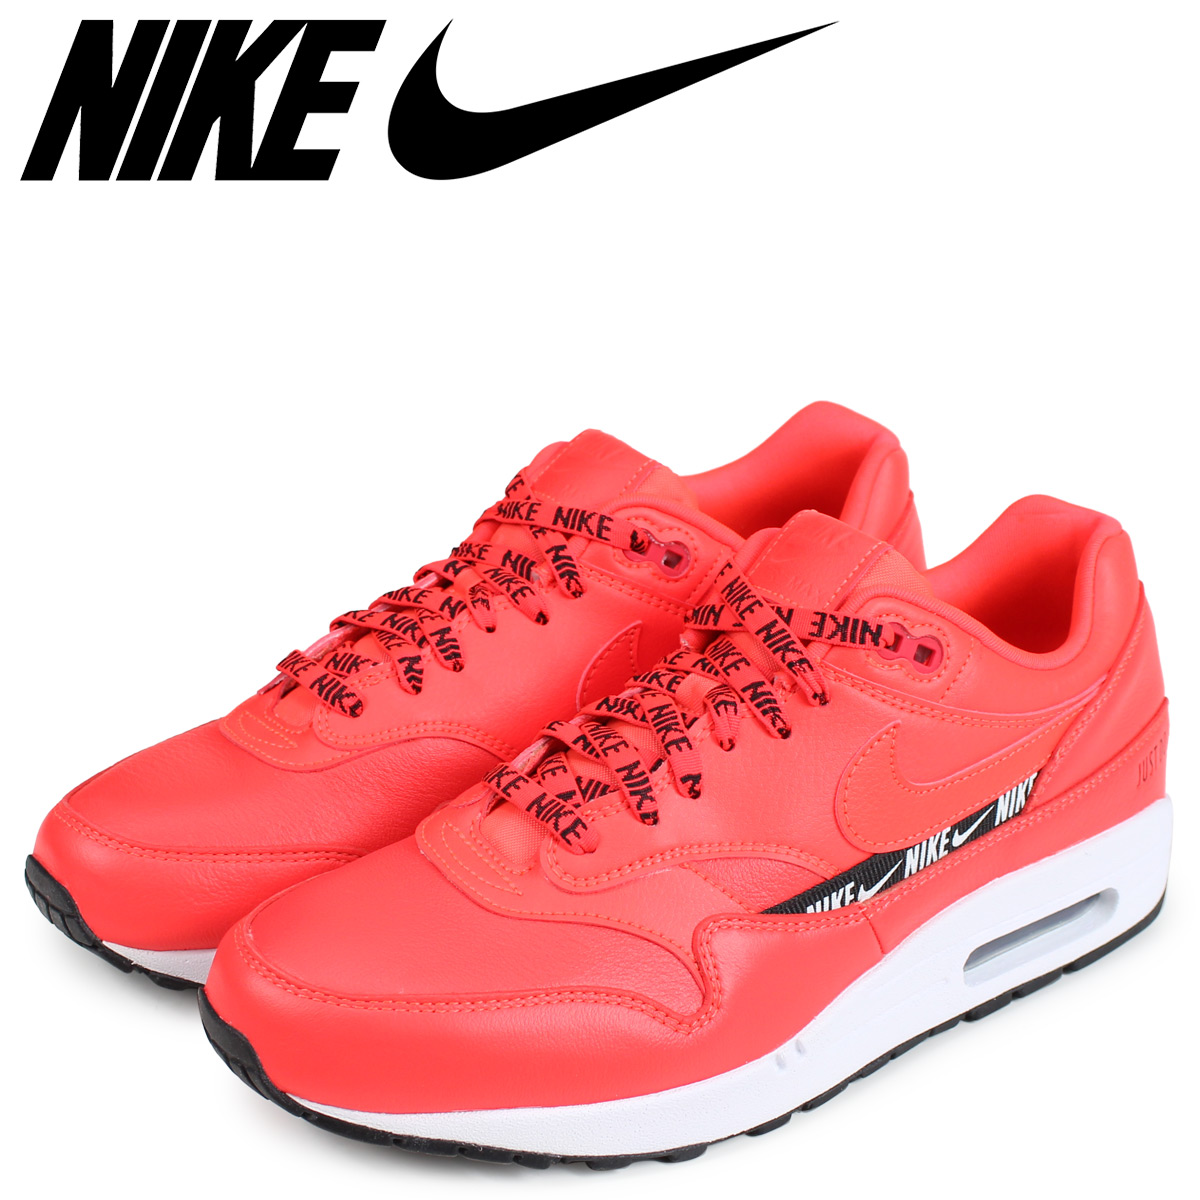 0ac2d988f6f9 Sugar Online Shop  NIKE Kie Ney AMAX 1 sneakers men WMNS AIR MAX 1 ...